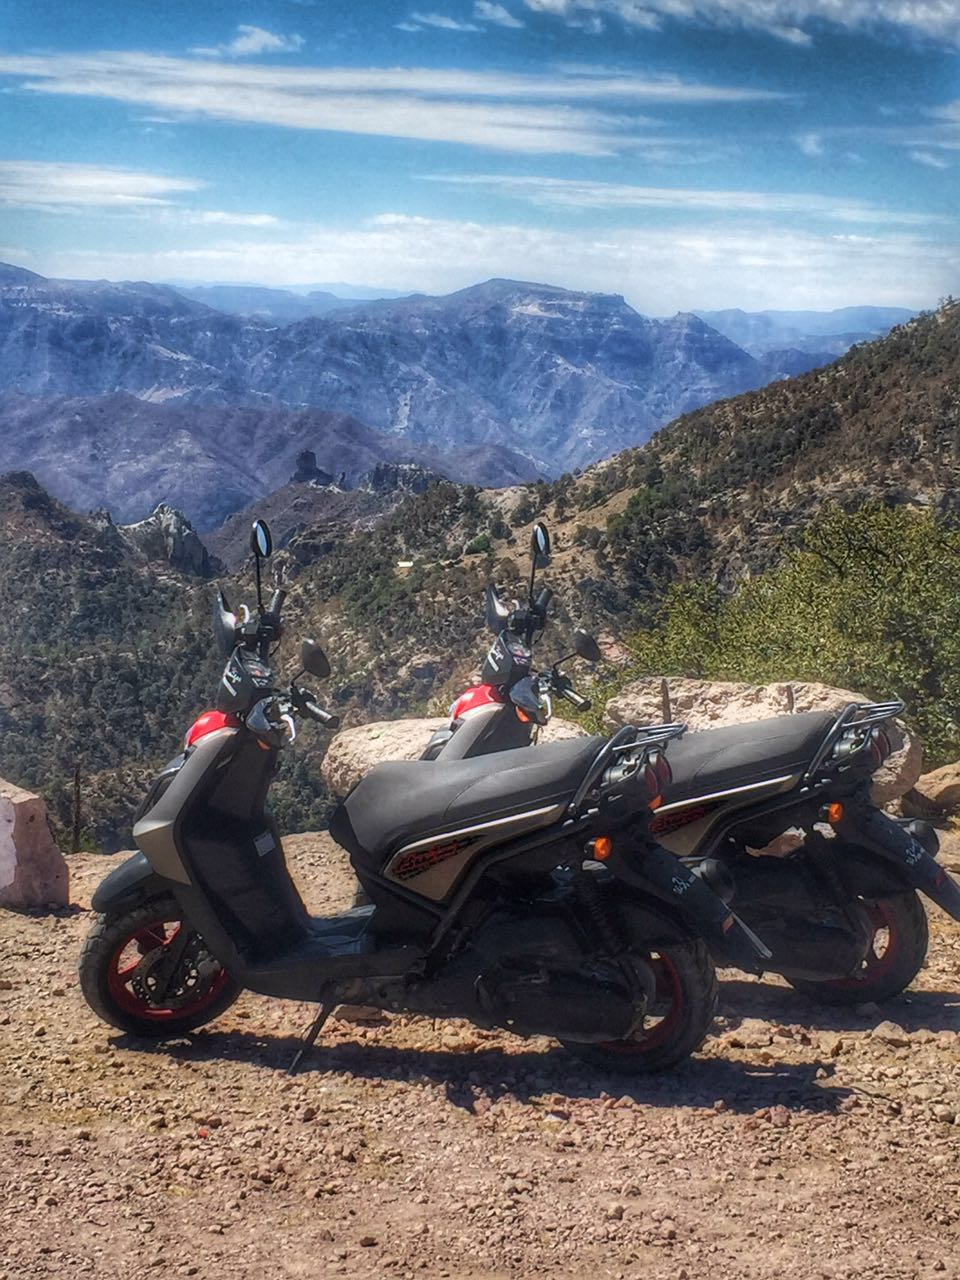 Copper Canyon Tour with Yamaha Scooter Rentals | The 3